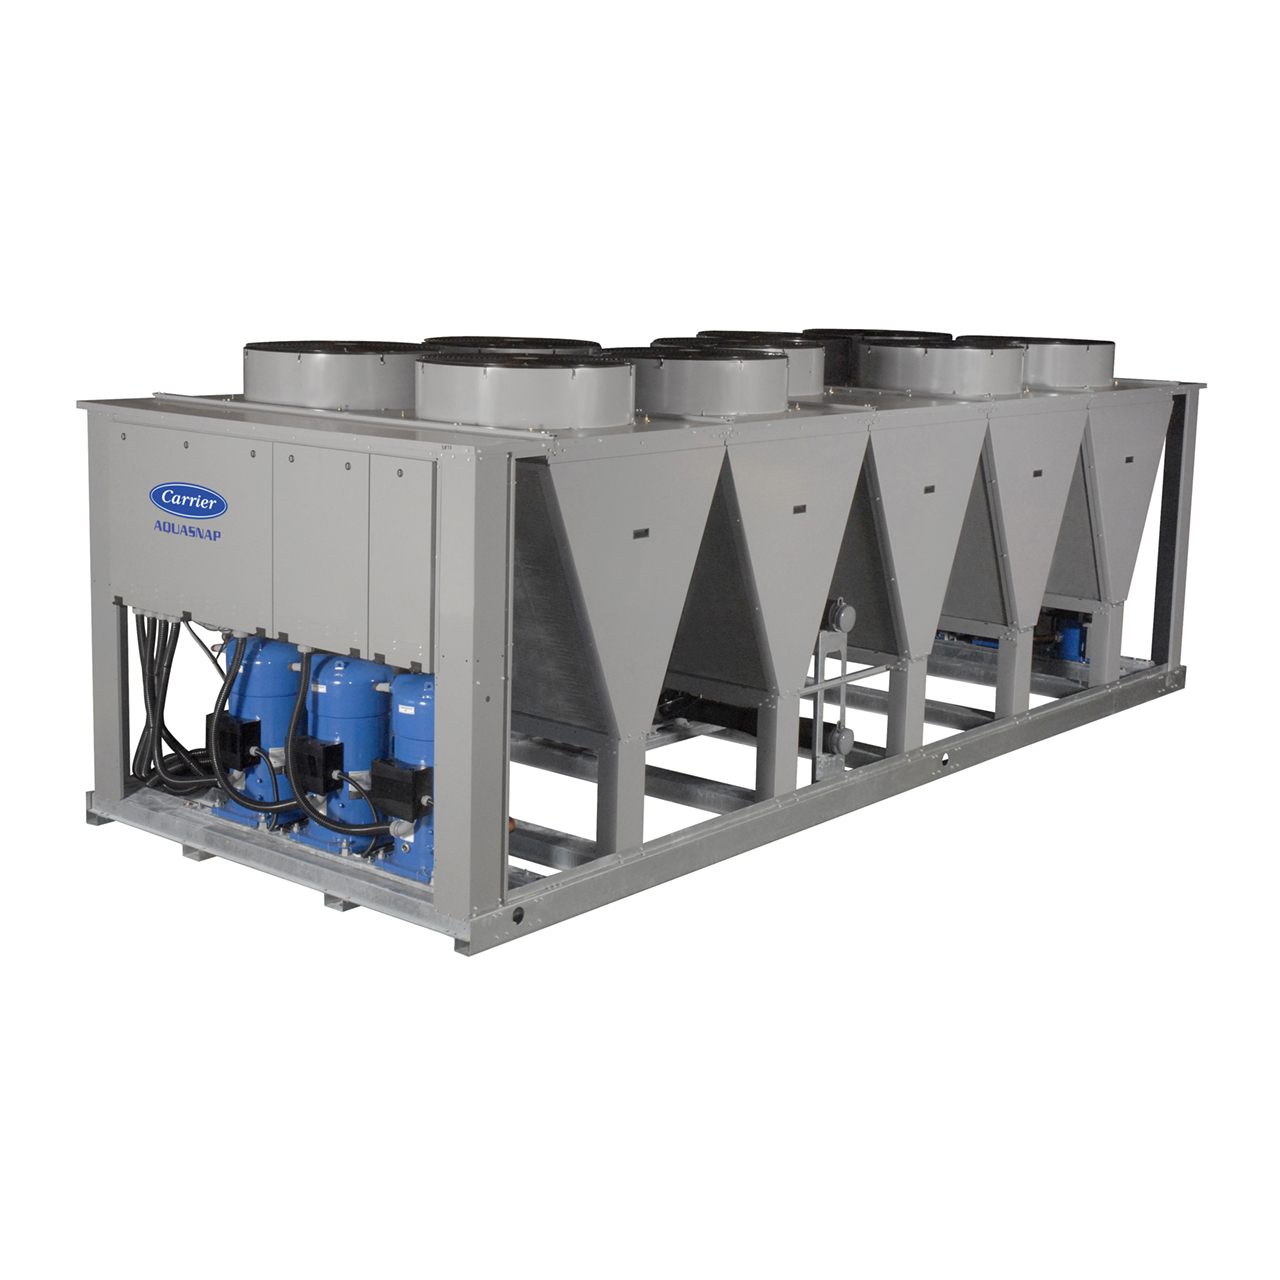 The AquaSnap® 30RAP chiller is an effective all-in-one package that is easy to install and own. The chiller costs less to purchase and install than other chillers in its class, and operates quietly and efficiently.